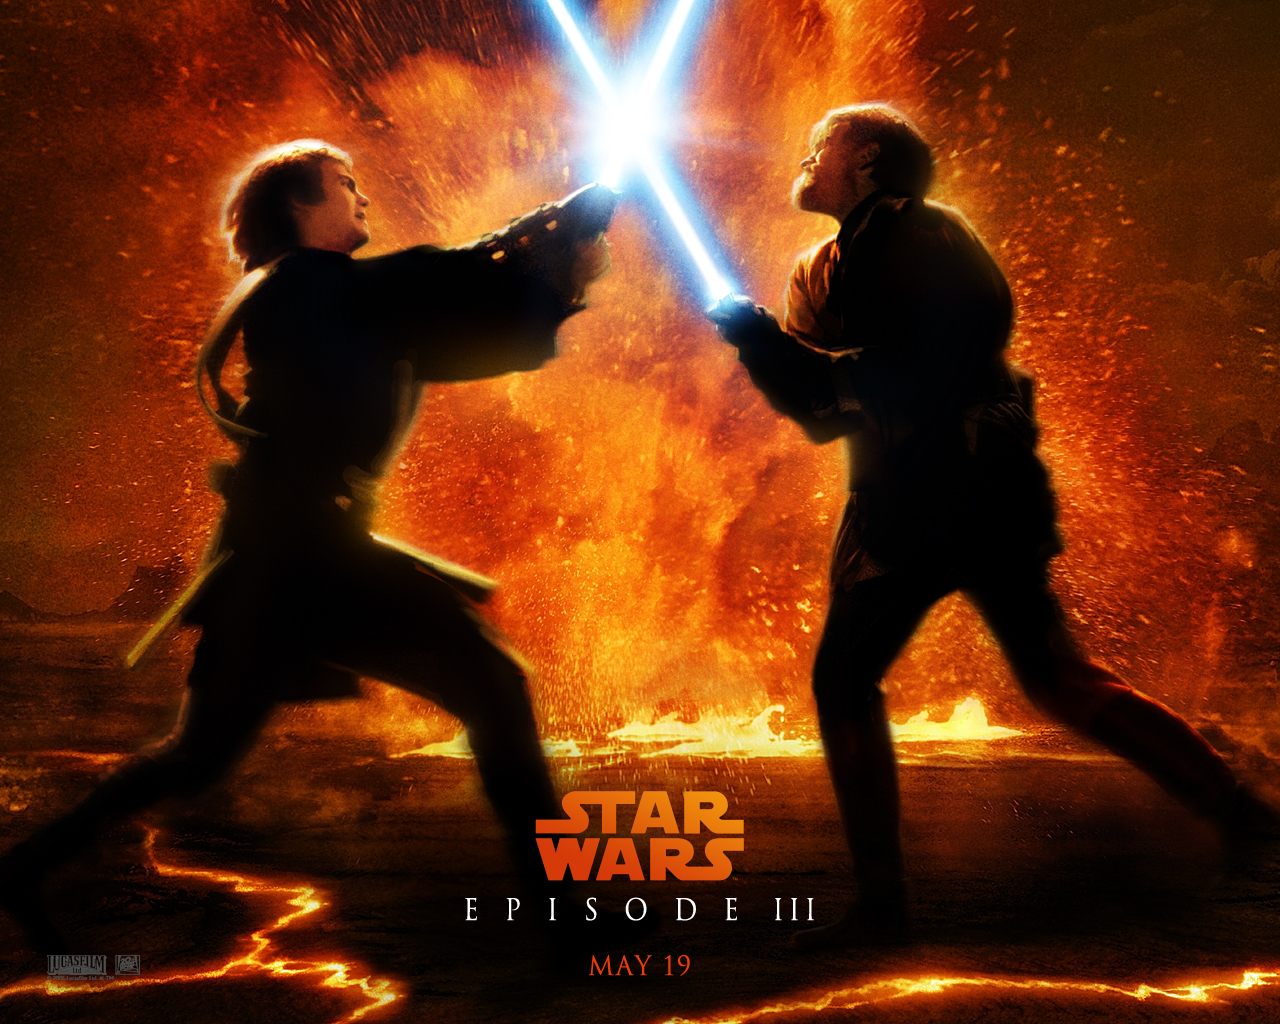 Countdown To Star Wars Revenge Of The Sith The Georgetown Voice